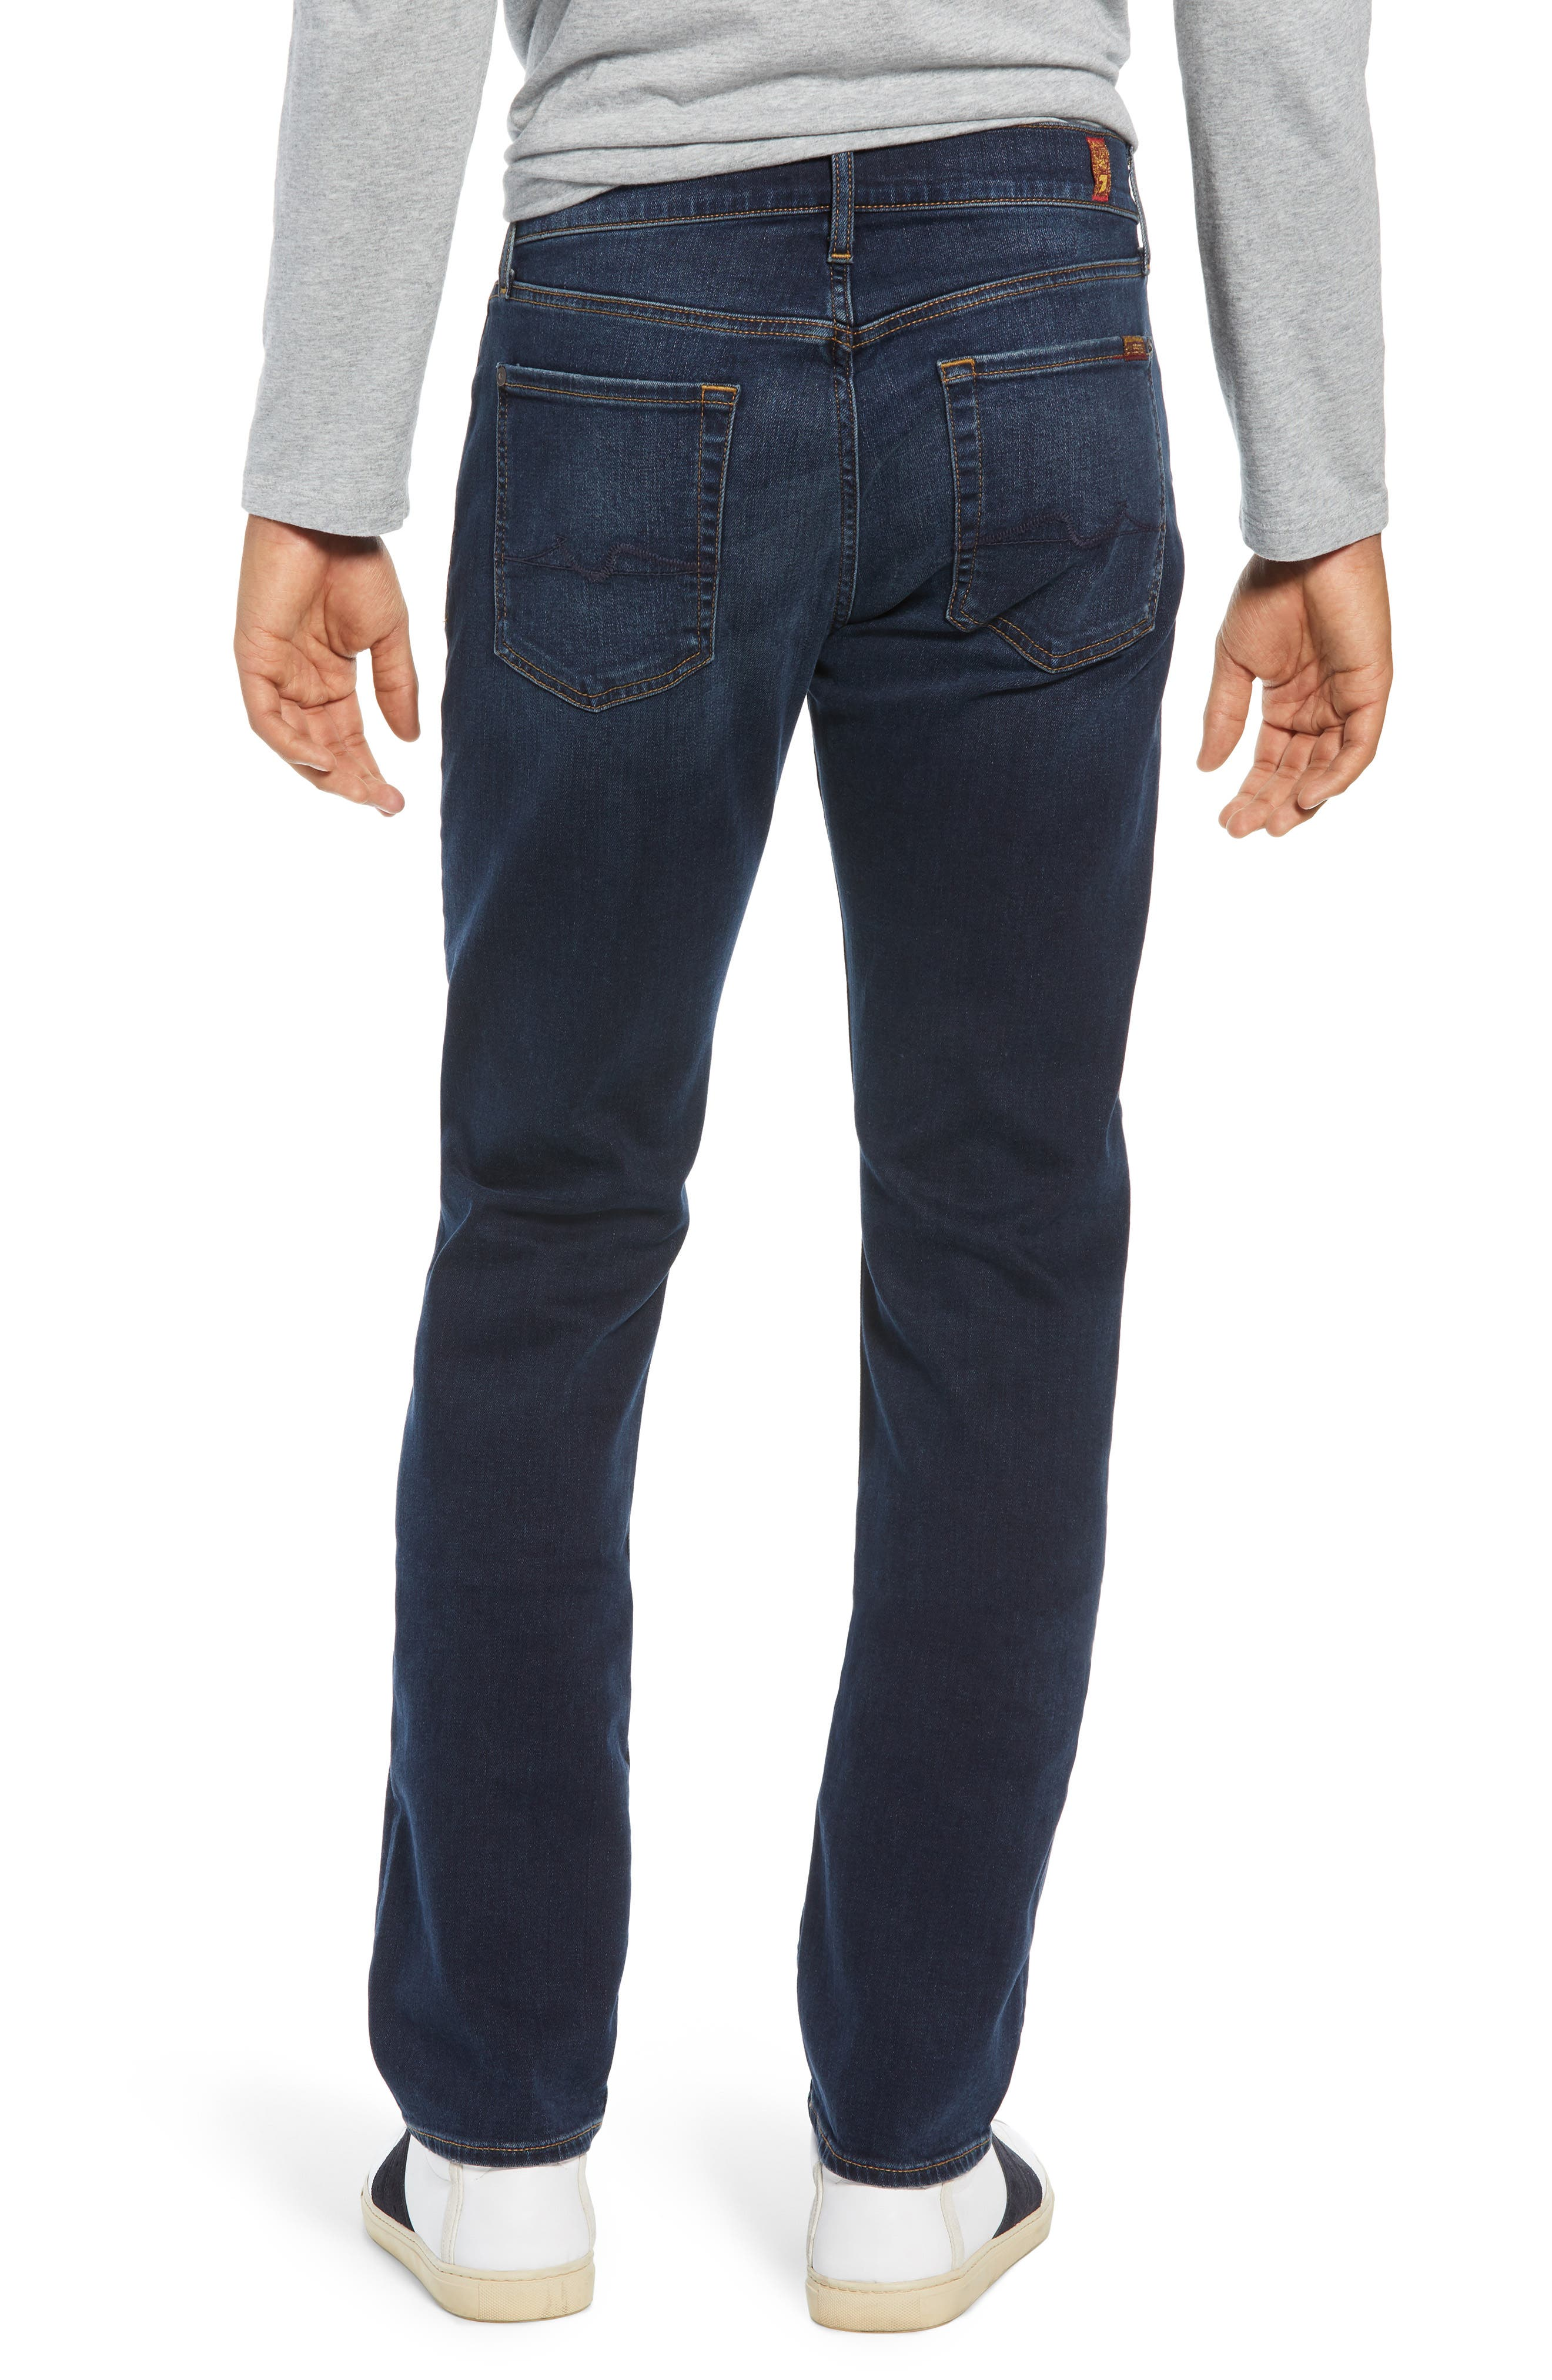 Slimmy Slim Fit Jeans,                             Alternate thumbnail 2, color,                             LONEWOLF